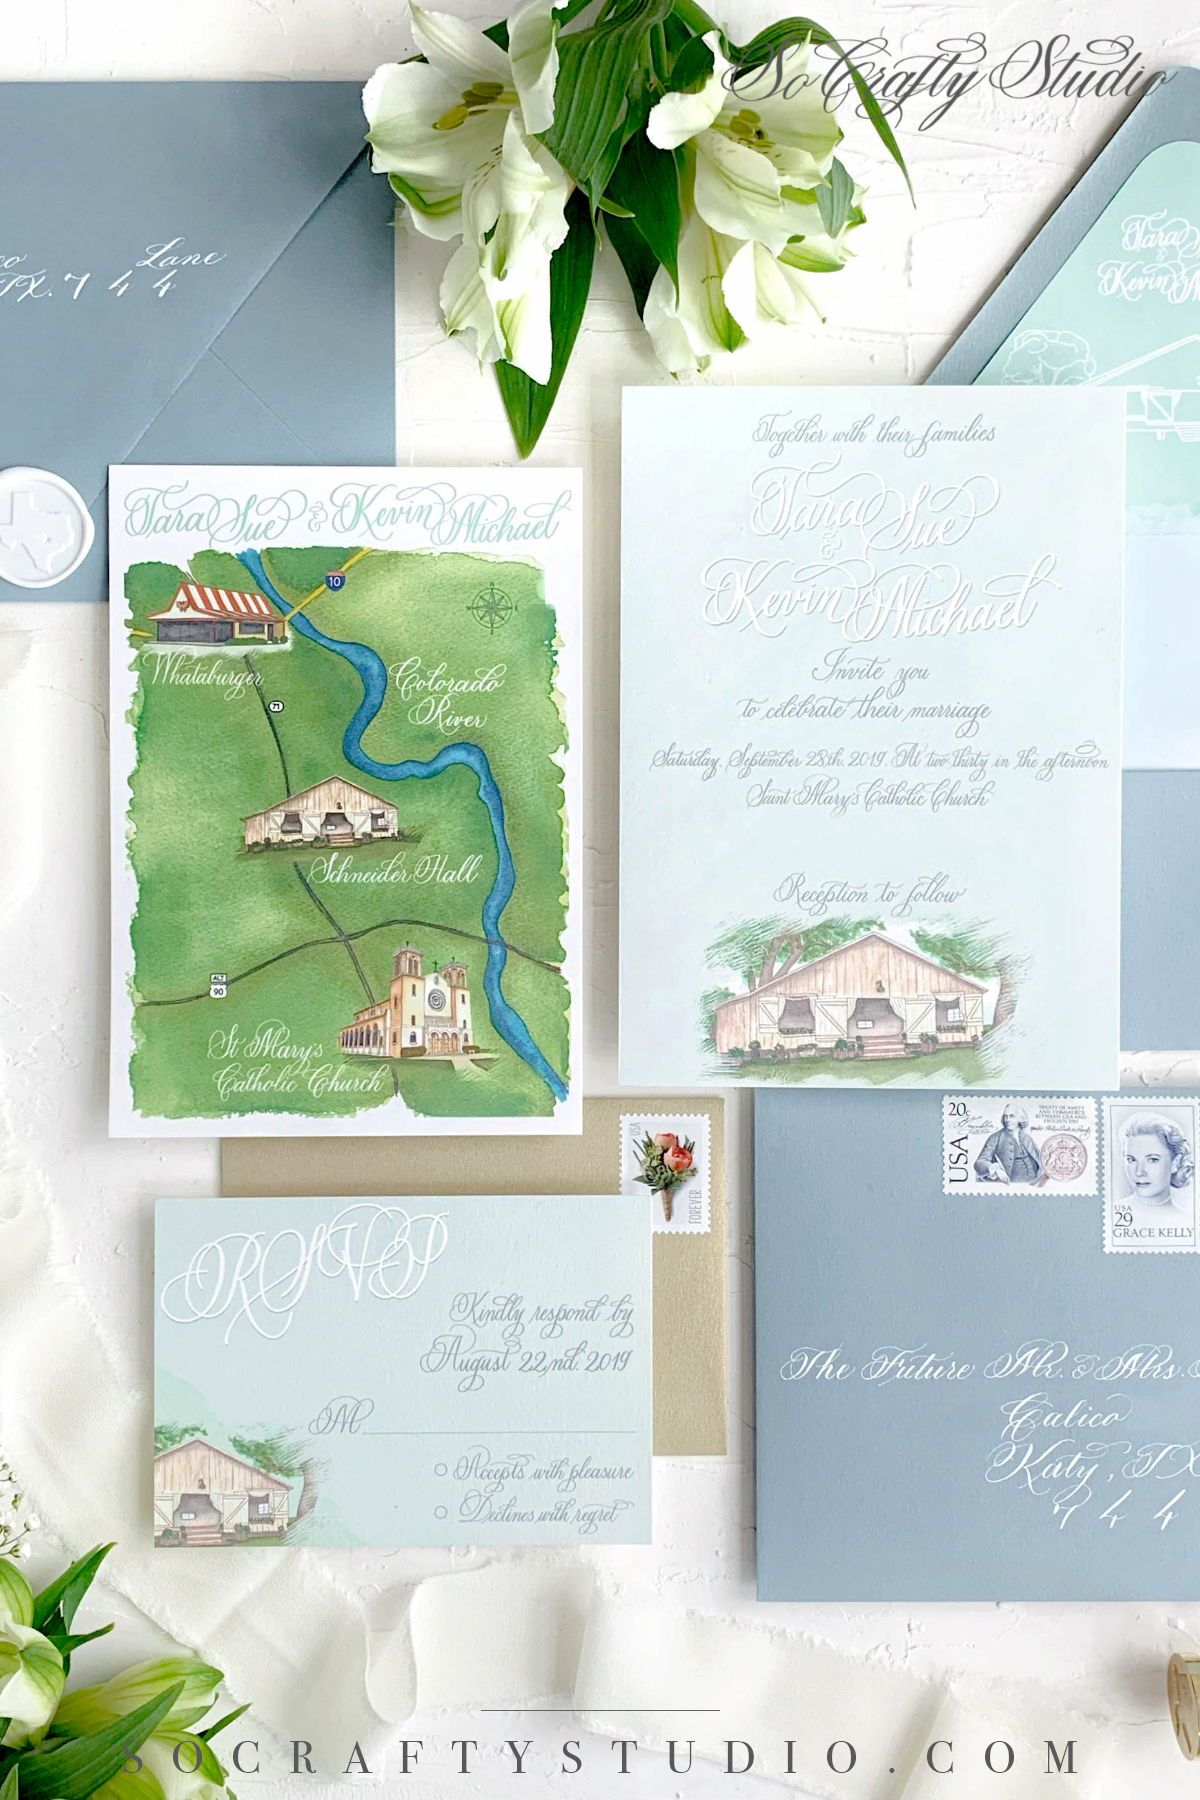 Custom Wedding Invitation Suite Watercolor Venue Watercolor Map Wedding Invitation In 2020 Watercolor Wedding Map Wedding Map Custom Wedding Invitations